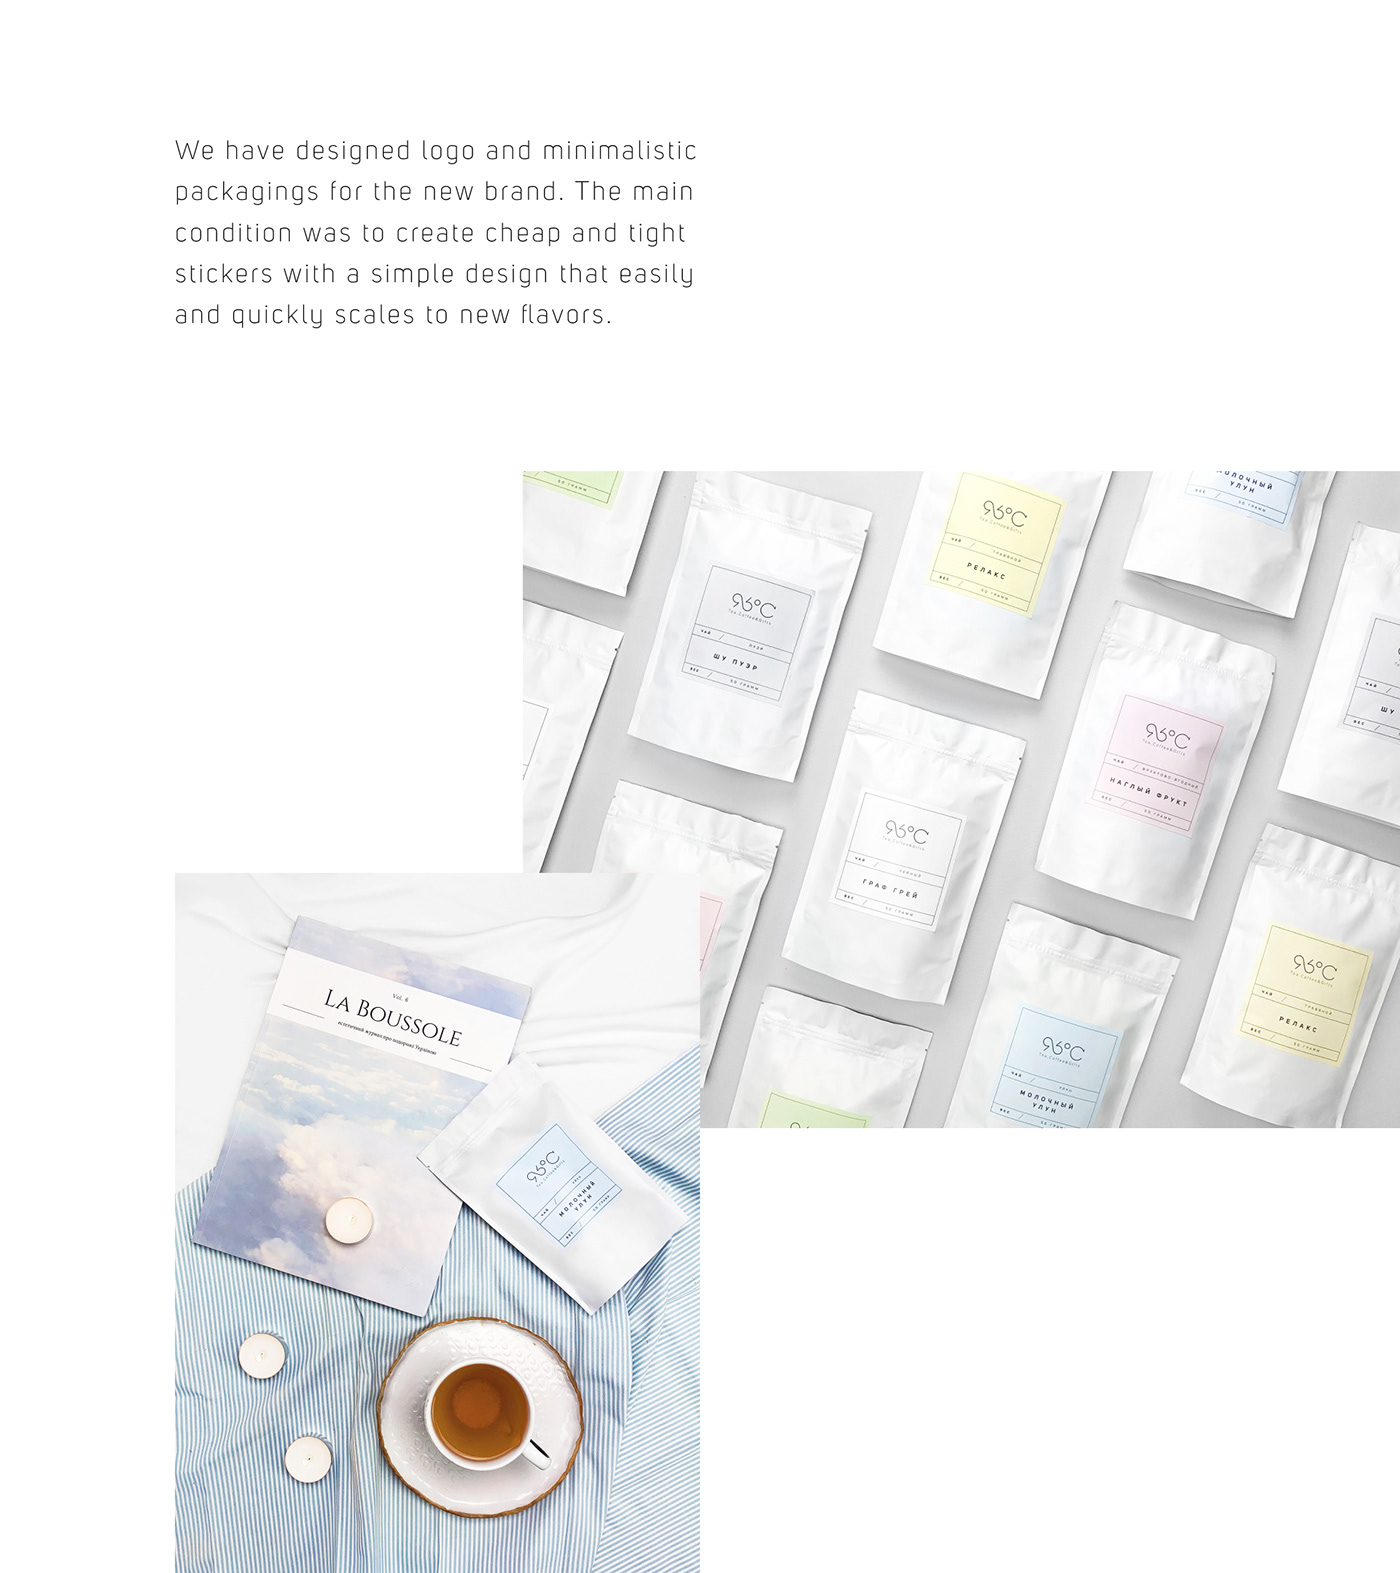 #tea #package  #Logo #Fashion #coffee #cinemagraph #minimalism animation  Packaging